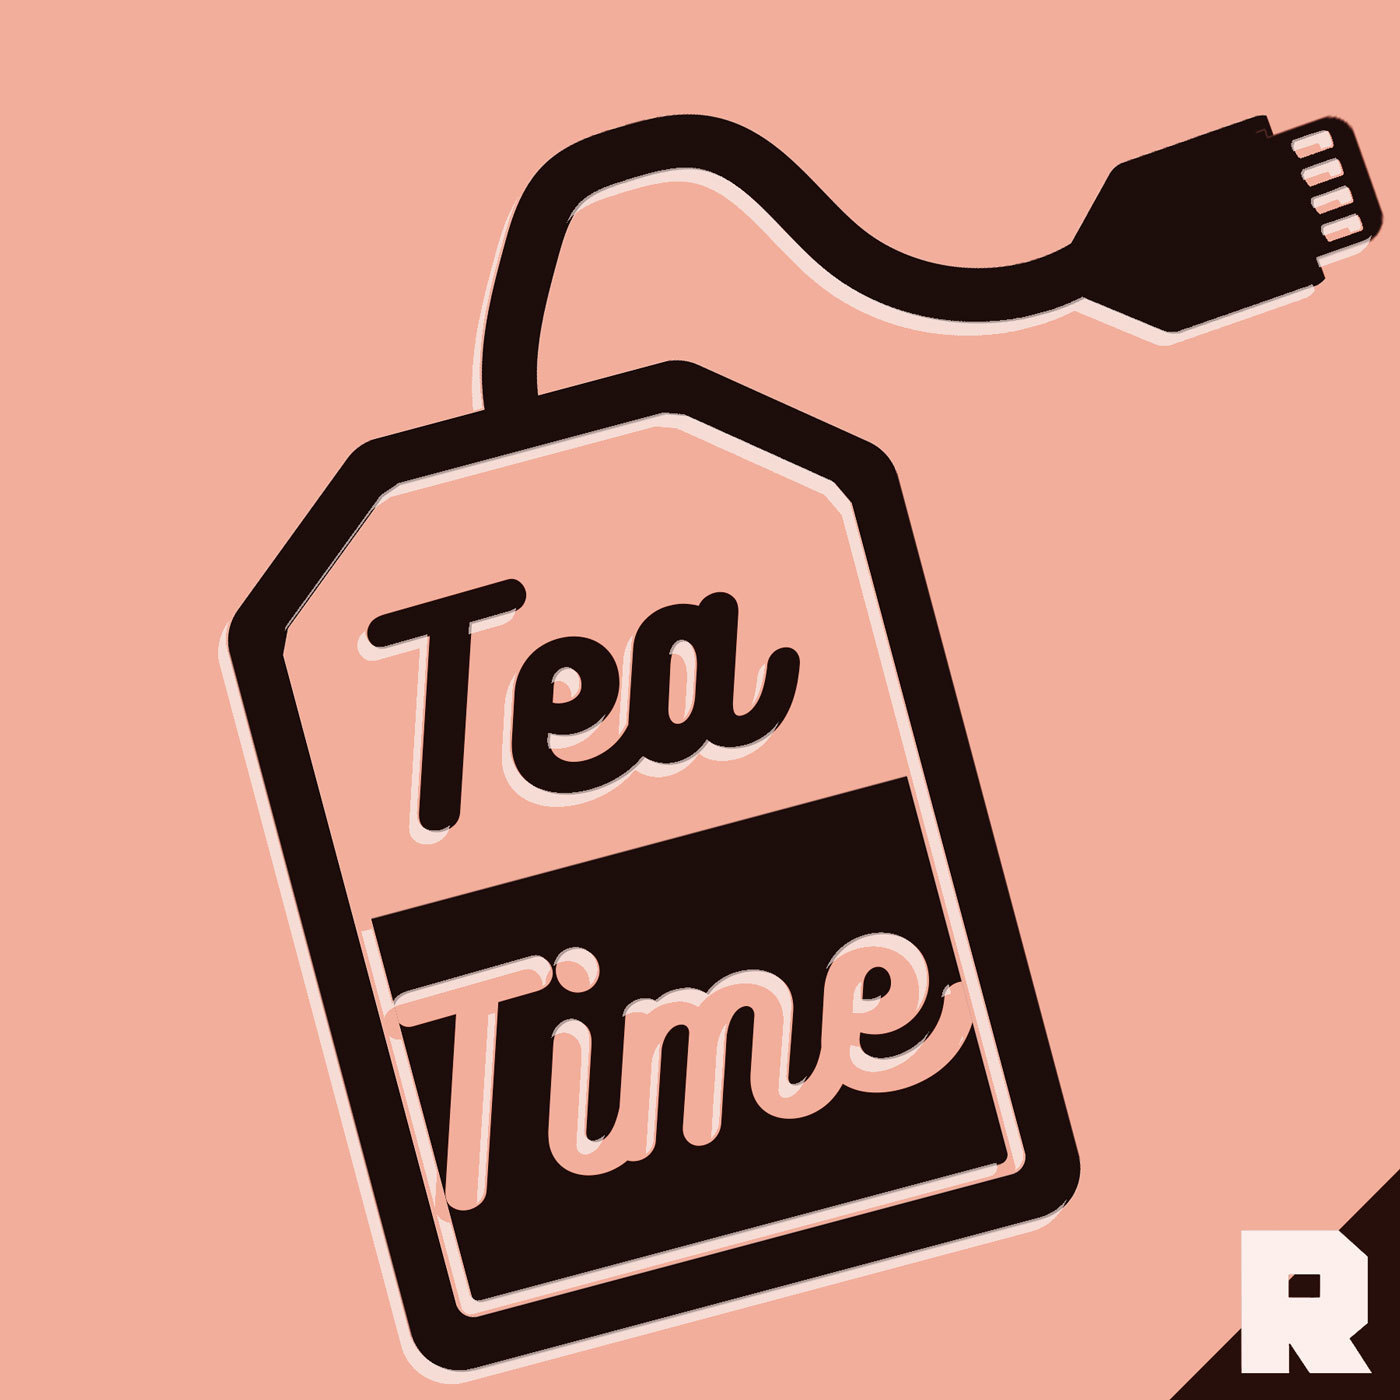 Celebrity Chris Watch | Tea Time (Ep. 562)